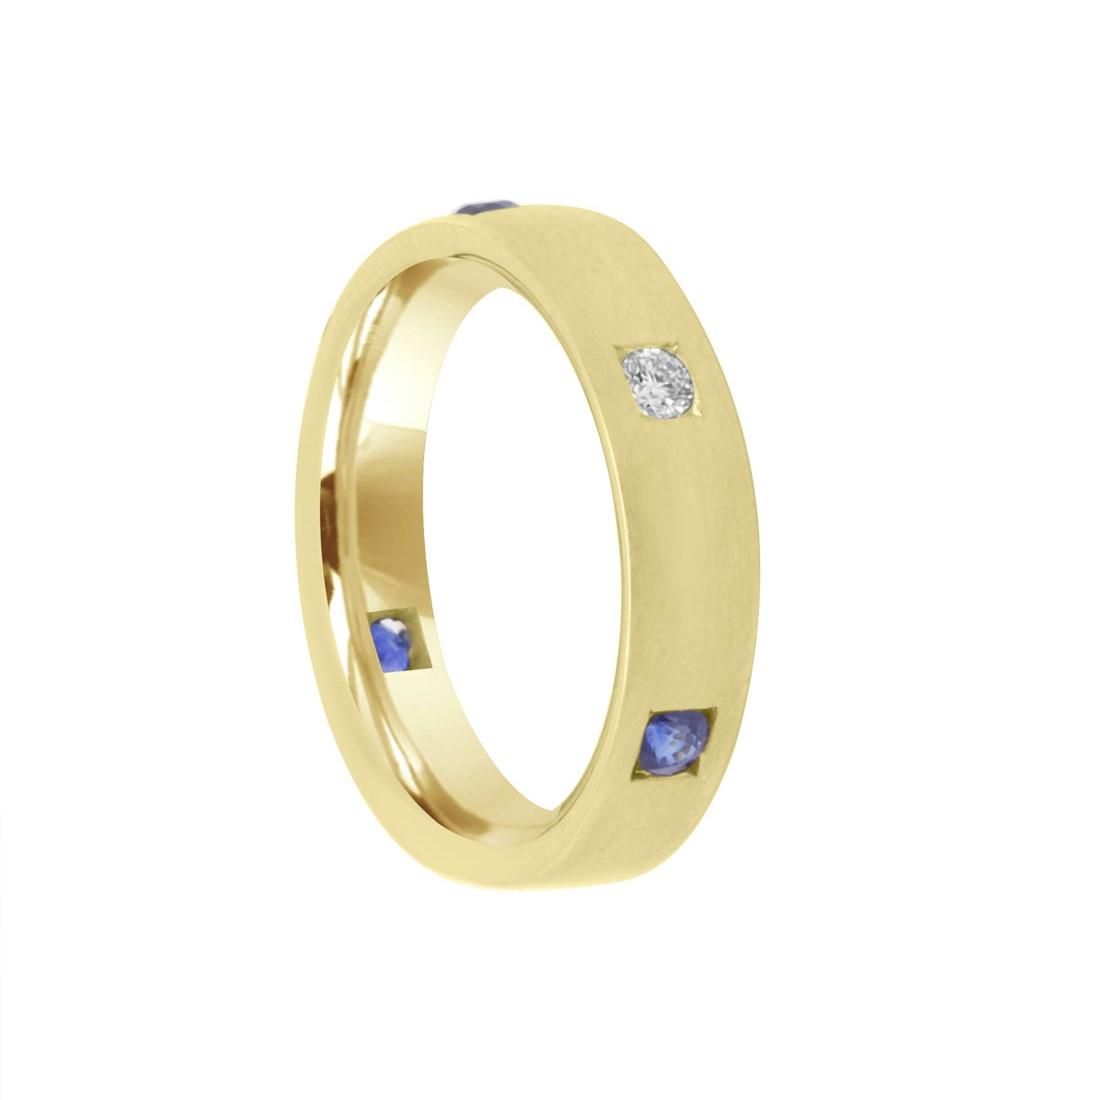 Anelloi in oro giallo con diamante ct 0.10 e zaffiri ct 0.30 - DAMIANI